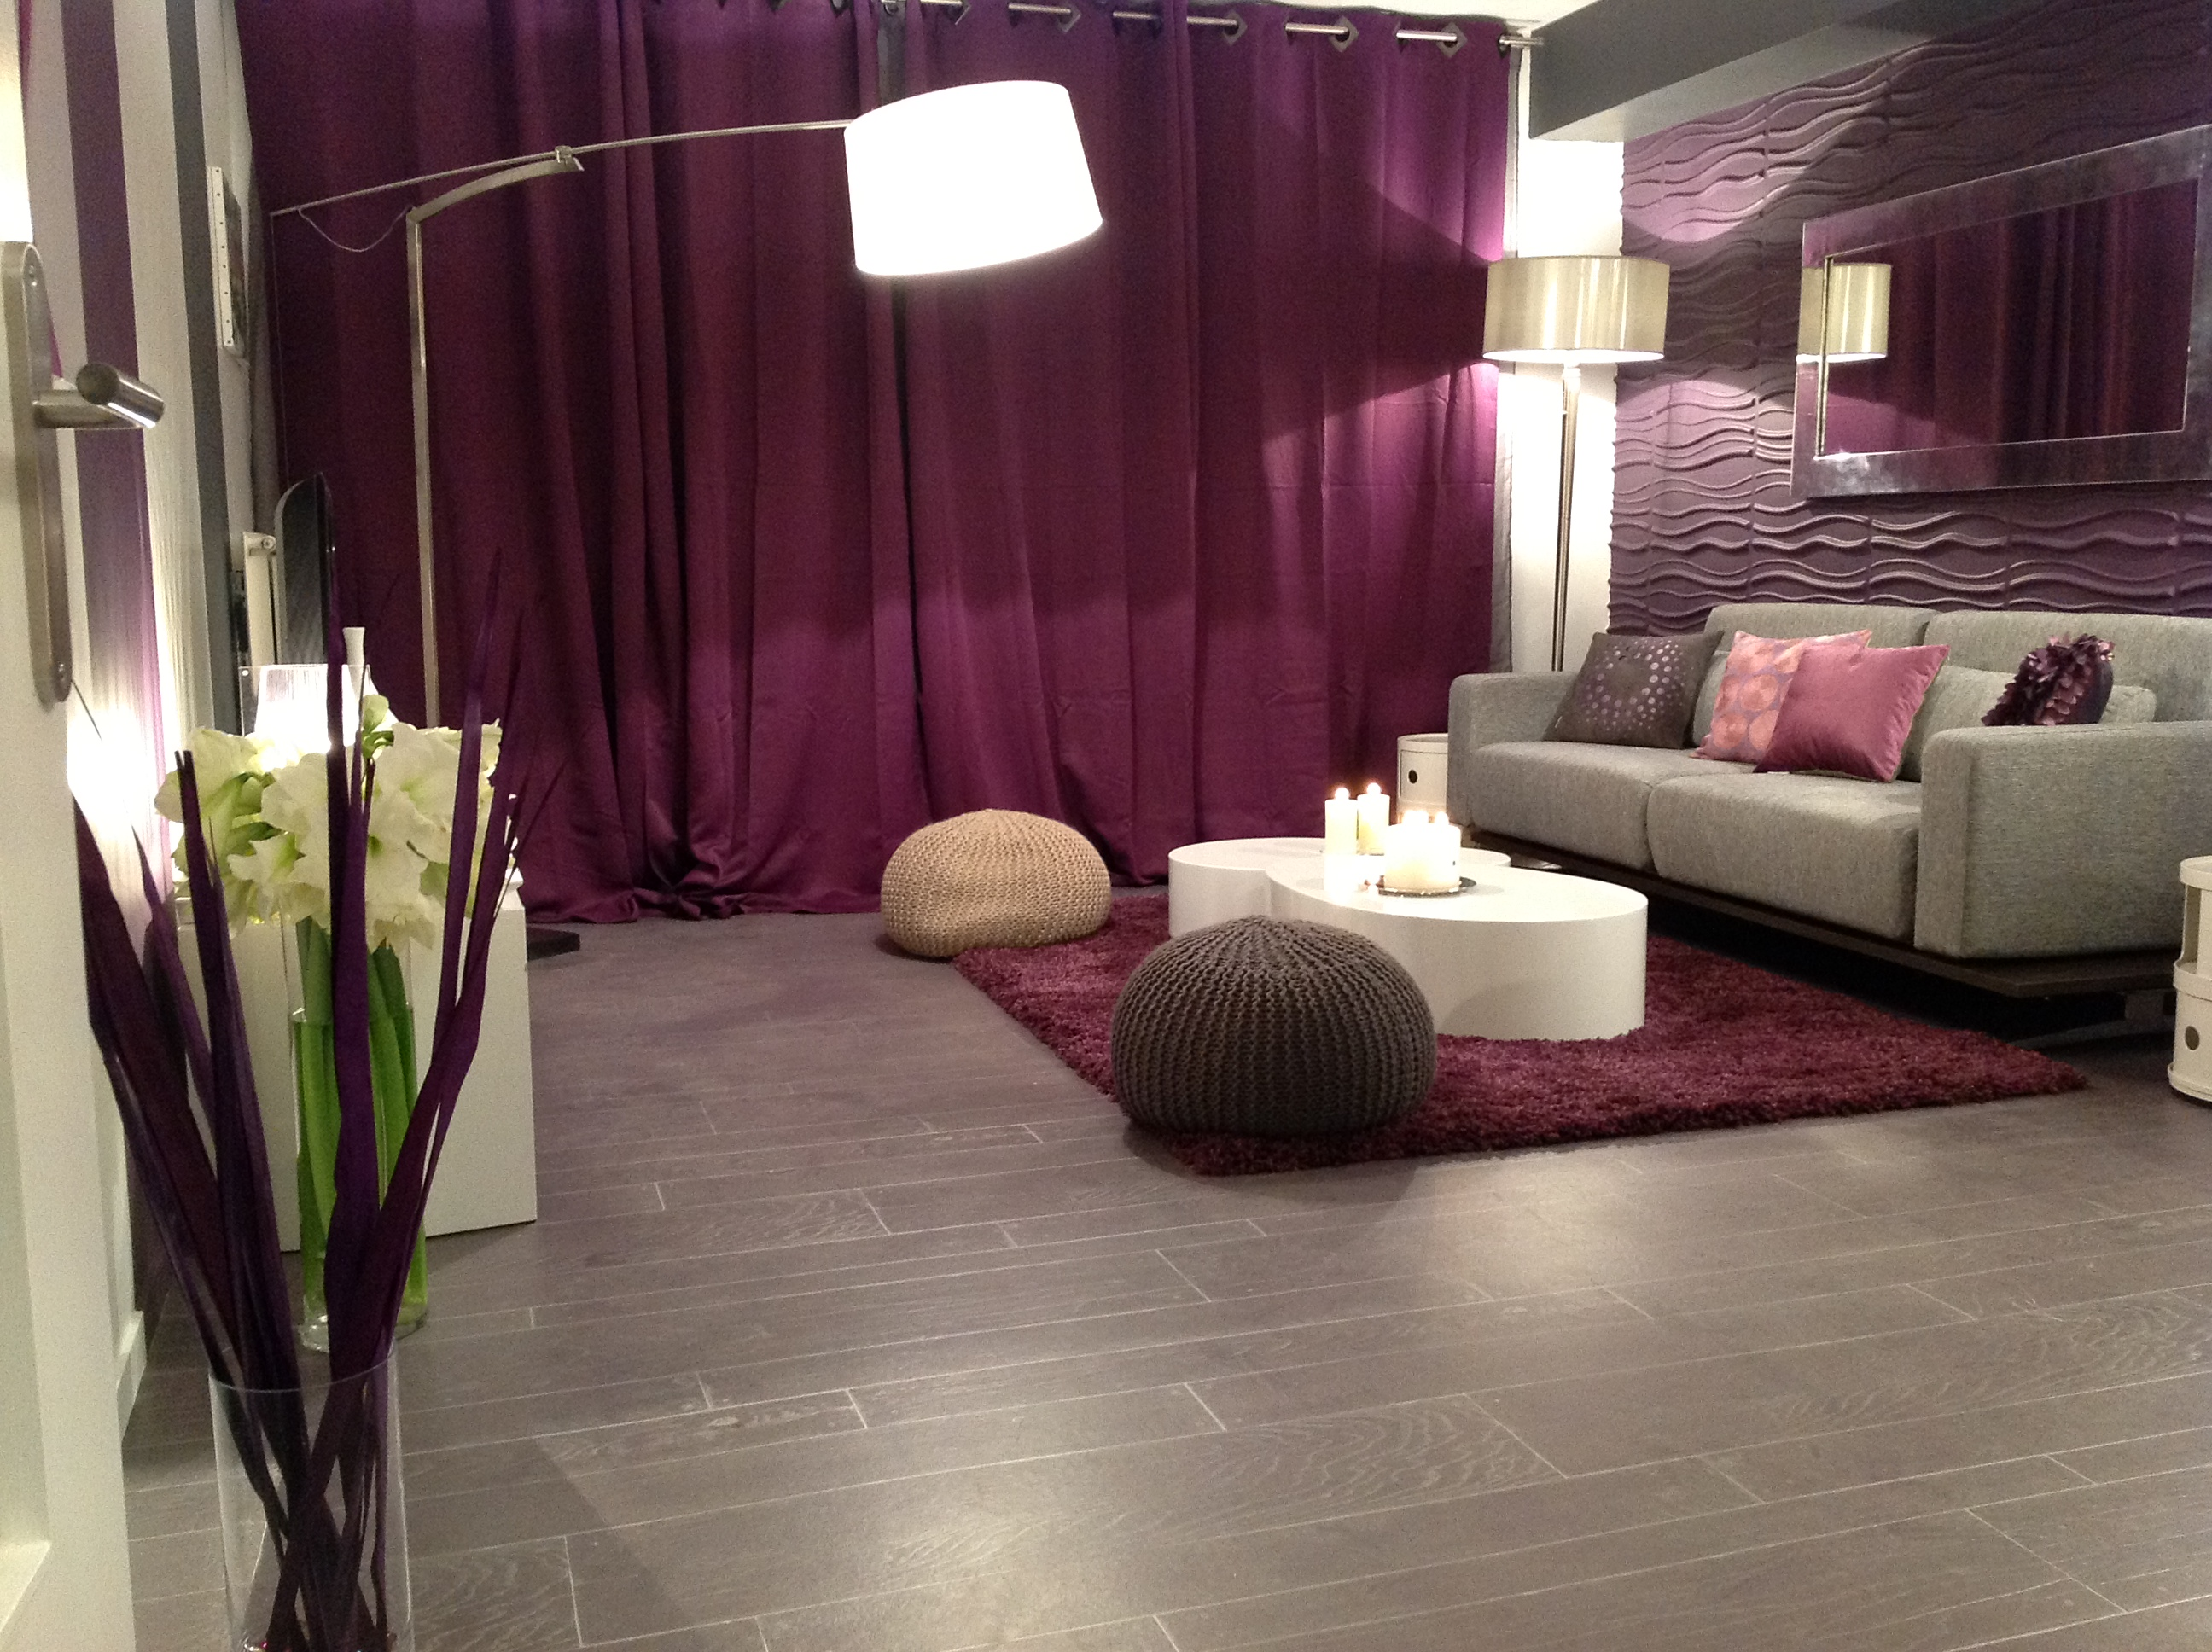 d coration salon prune et gris exemples d 39 am nagements On decoration salon prune